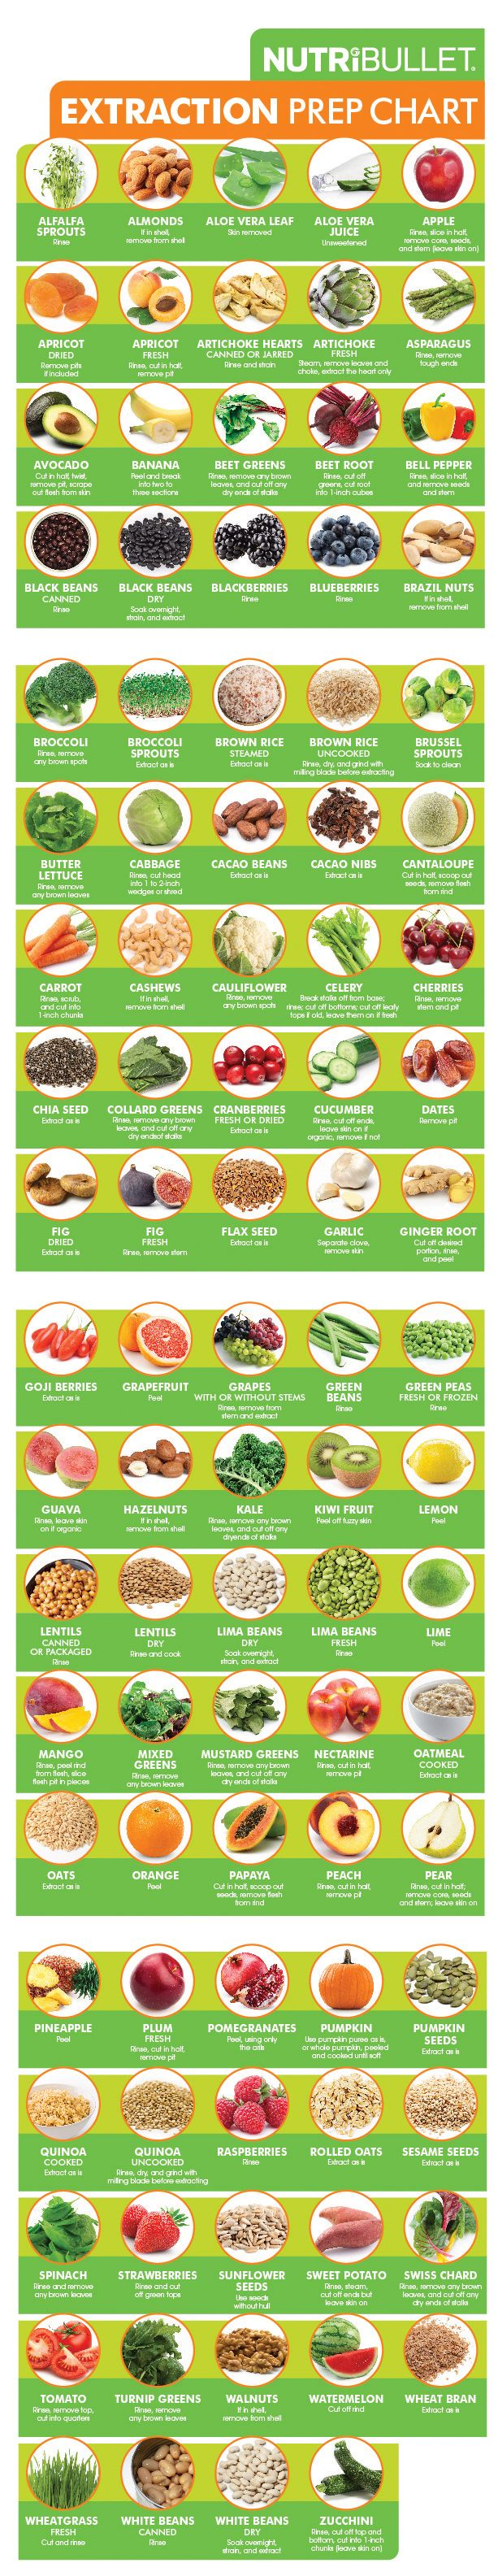 Wondering which fruits and/or vegetables you should peel or de-seed before putting them in your NutriBullet? Worry no more - this chart is here to help! With a long list of various fruits and vegetables and how to prepare them, you'll want to keep this one handy. Click here to download or print . Read more at https://www.nutriliving.com/infographics/extraction-prep-chart#T6rQrbqGmwIy3ZCF.99